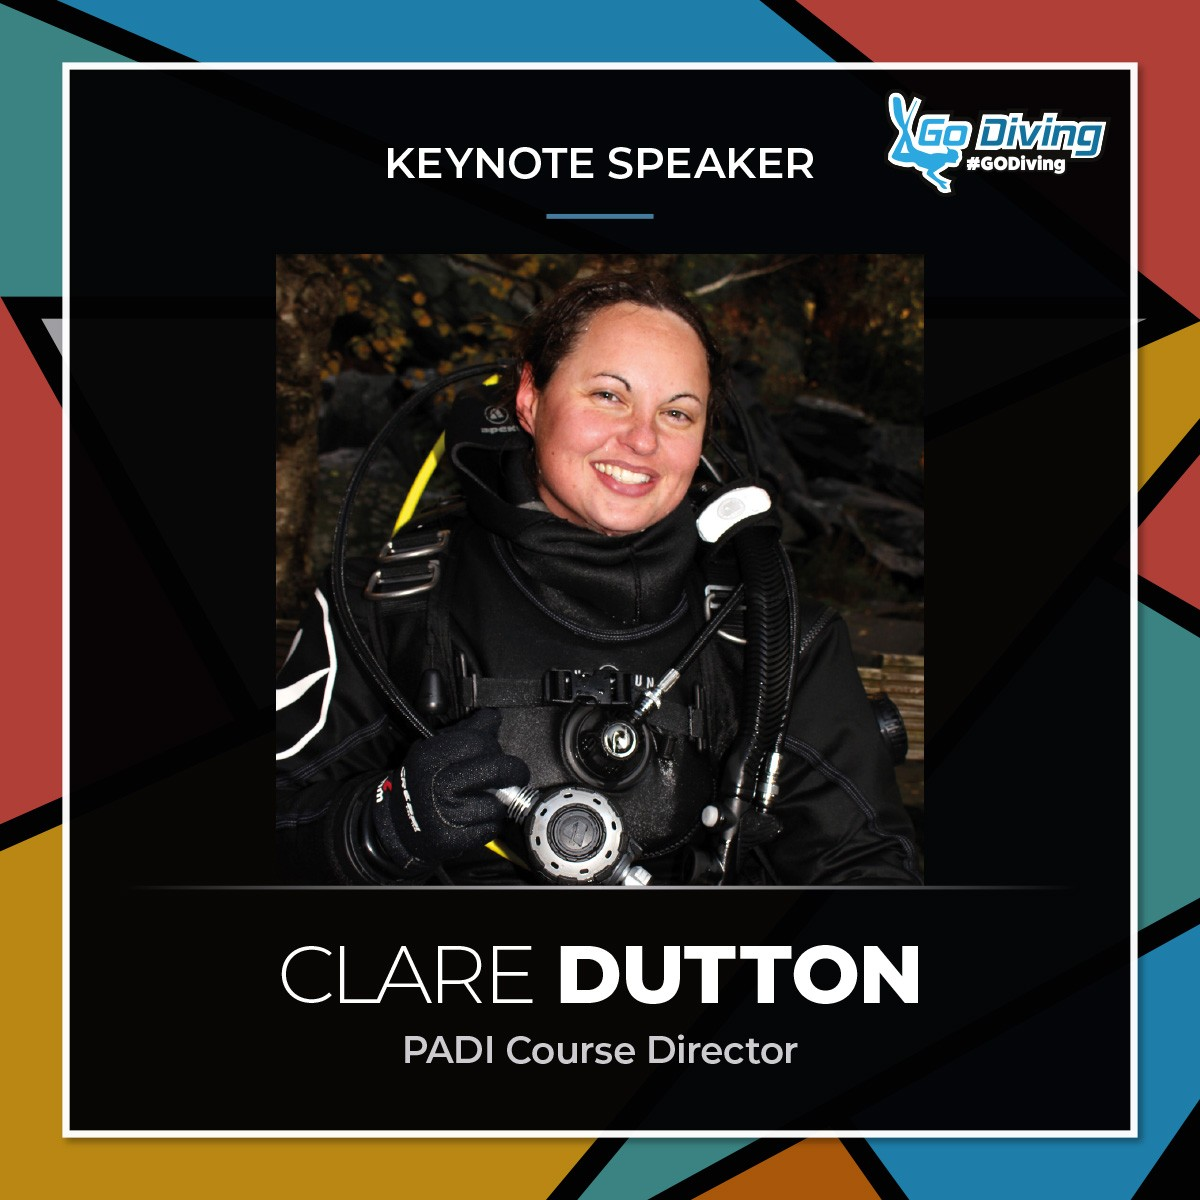 GO Diving Show Speaker Profile - Clare Dutton 1